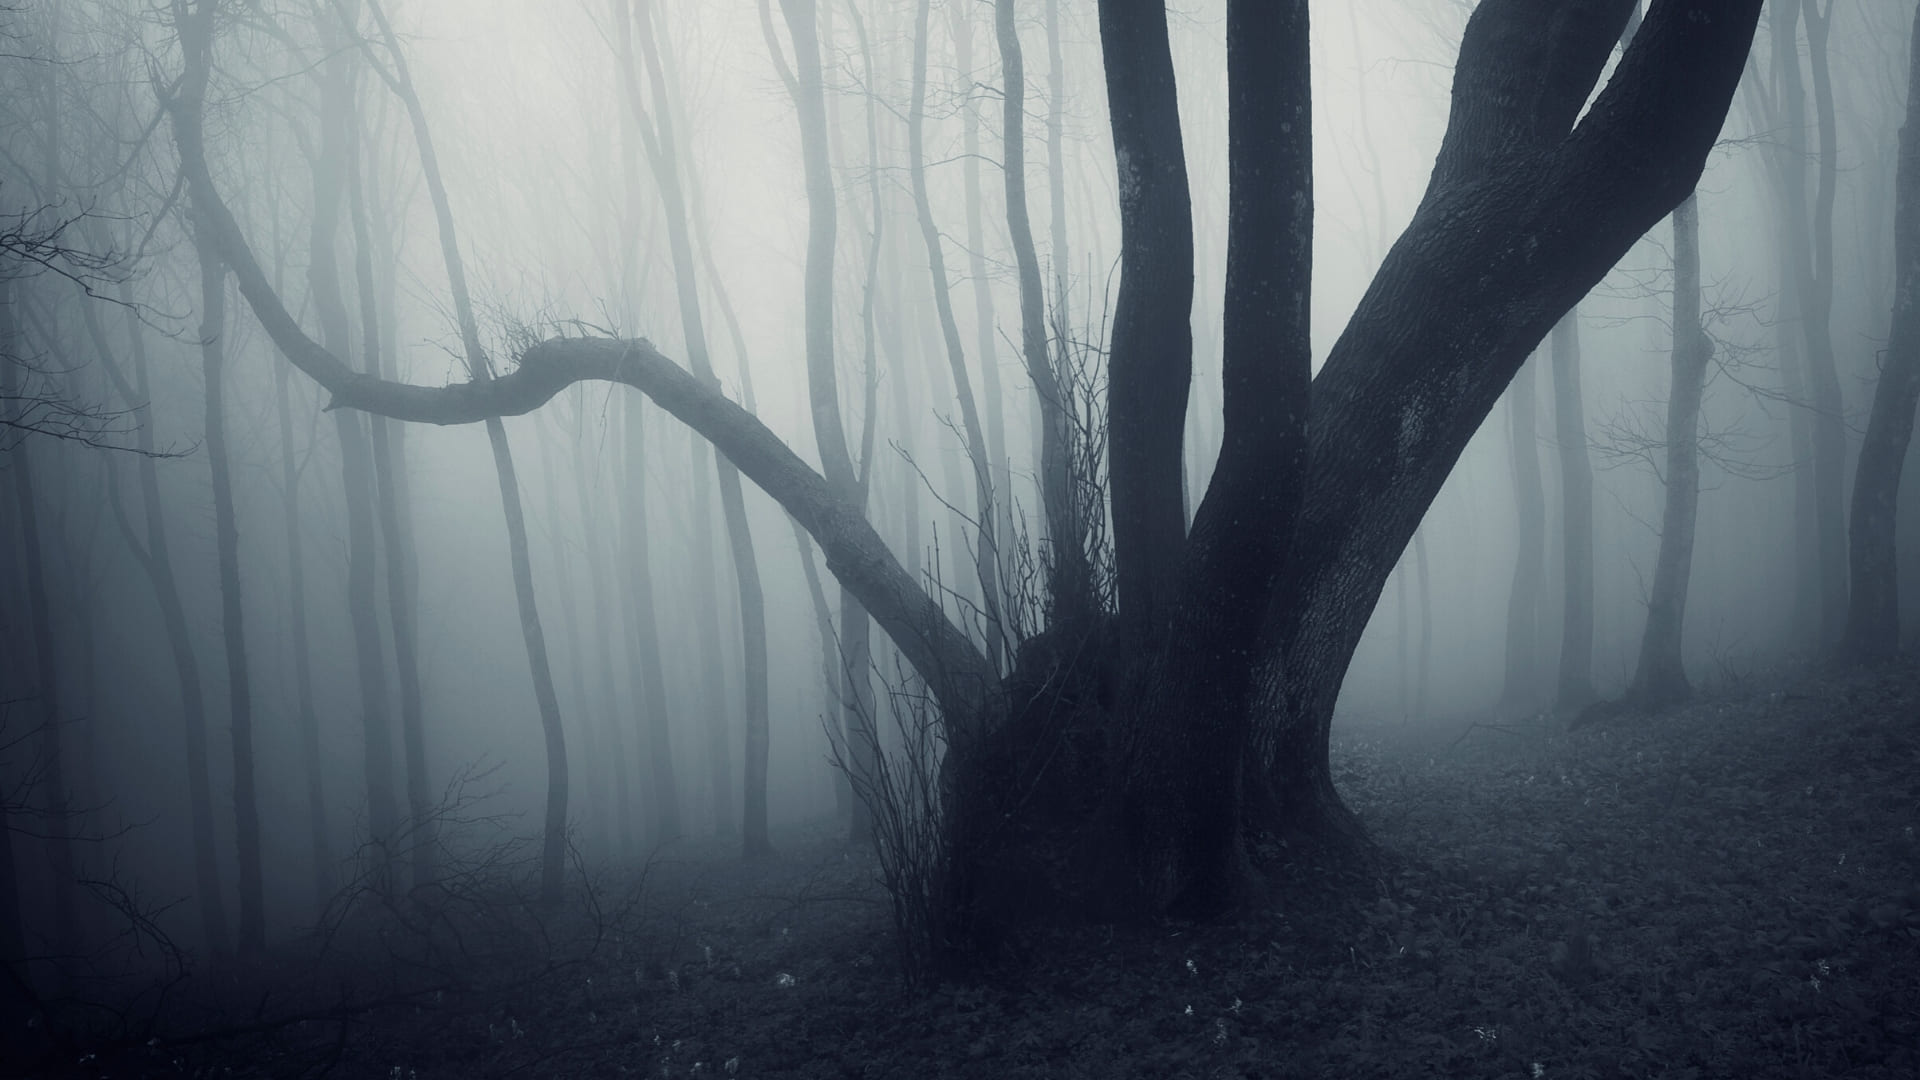 Haunted forest background